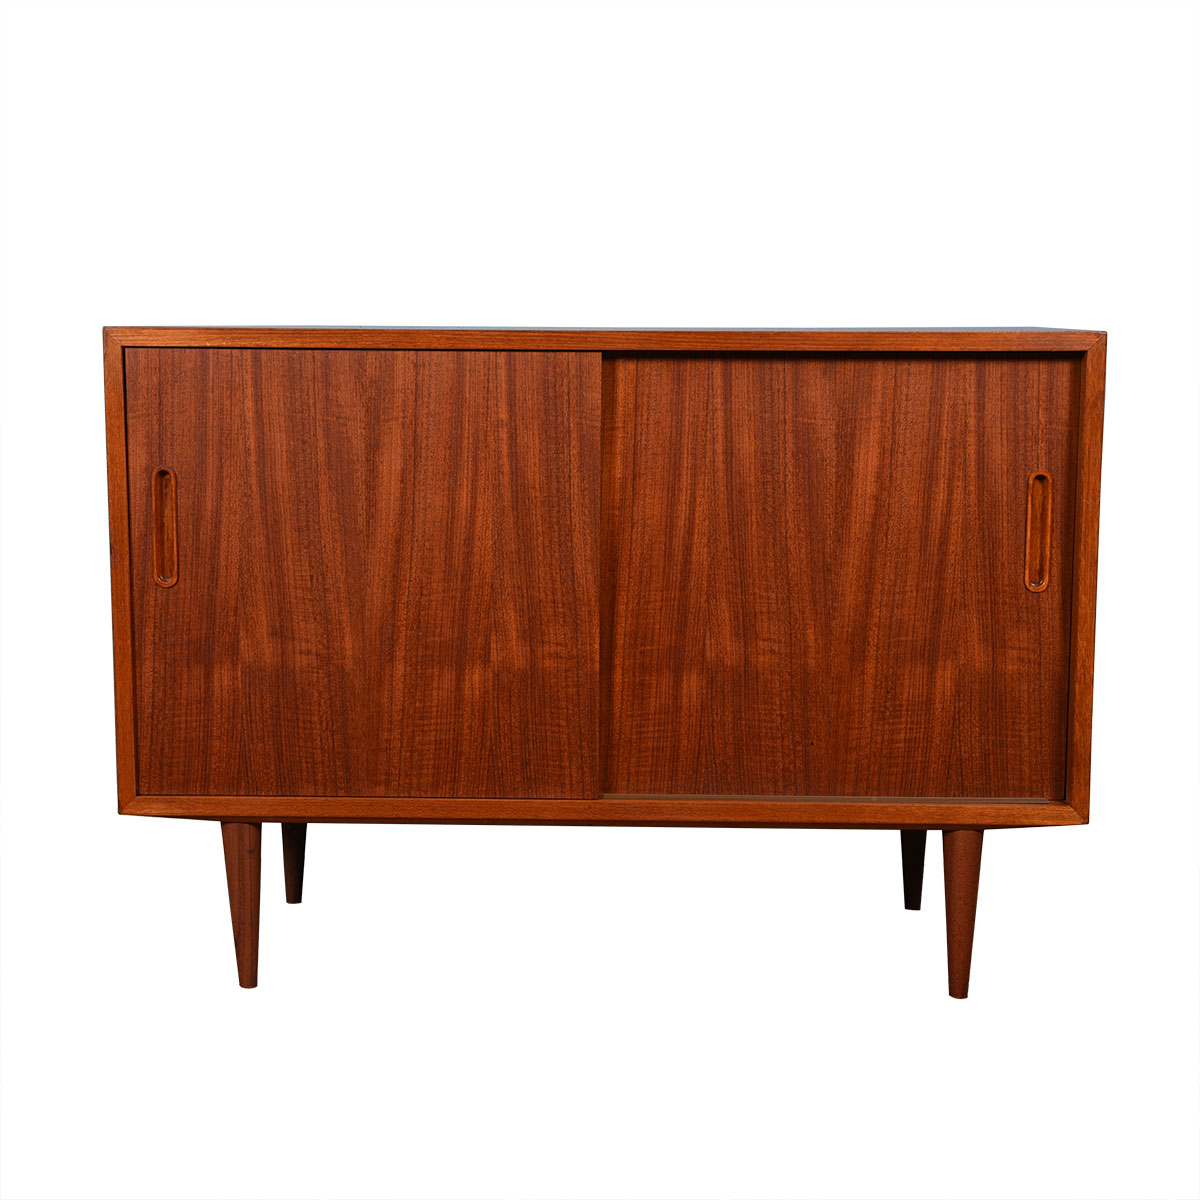 42″ Danish Teak Sliding Door Media Cabinet / Credenza